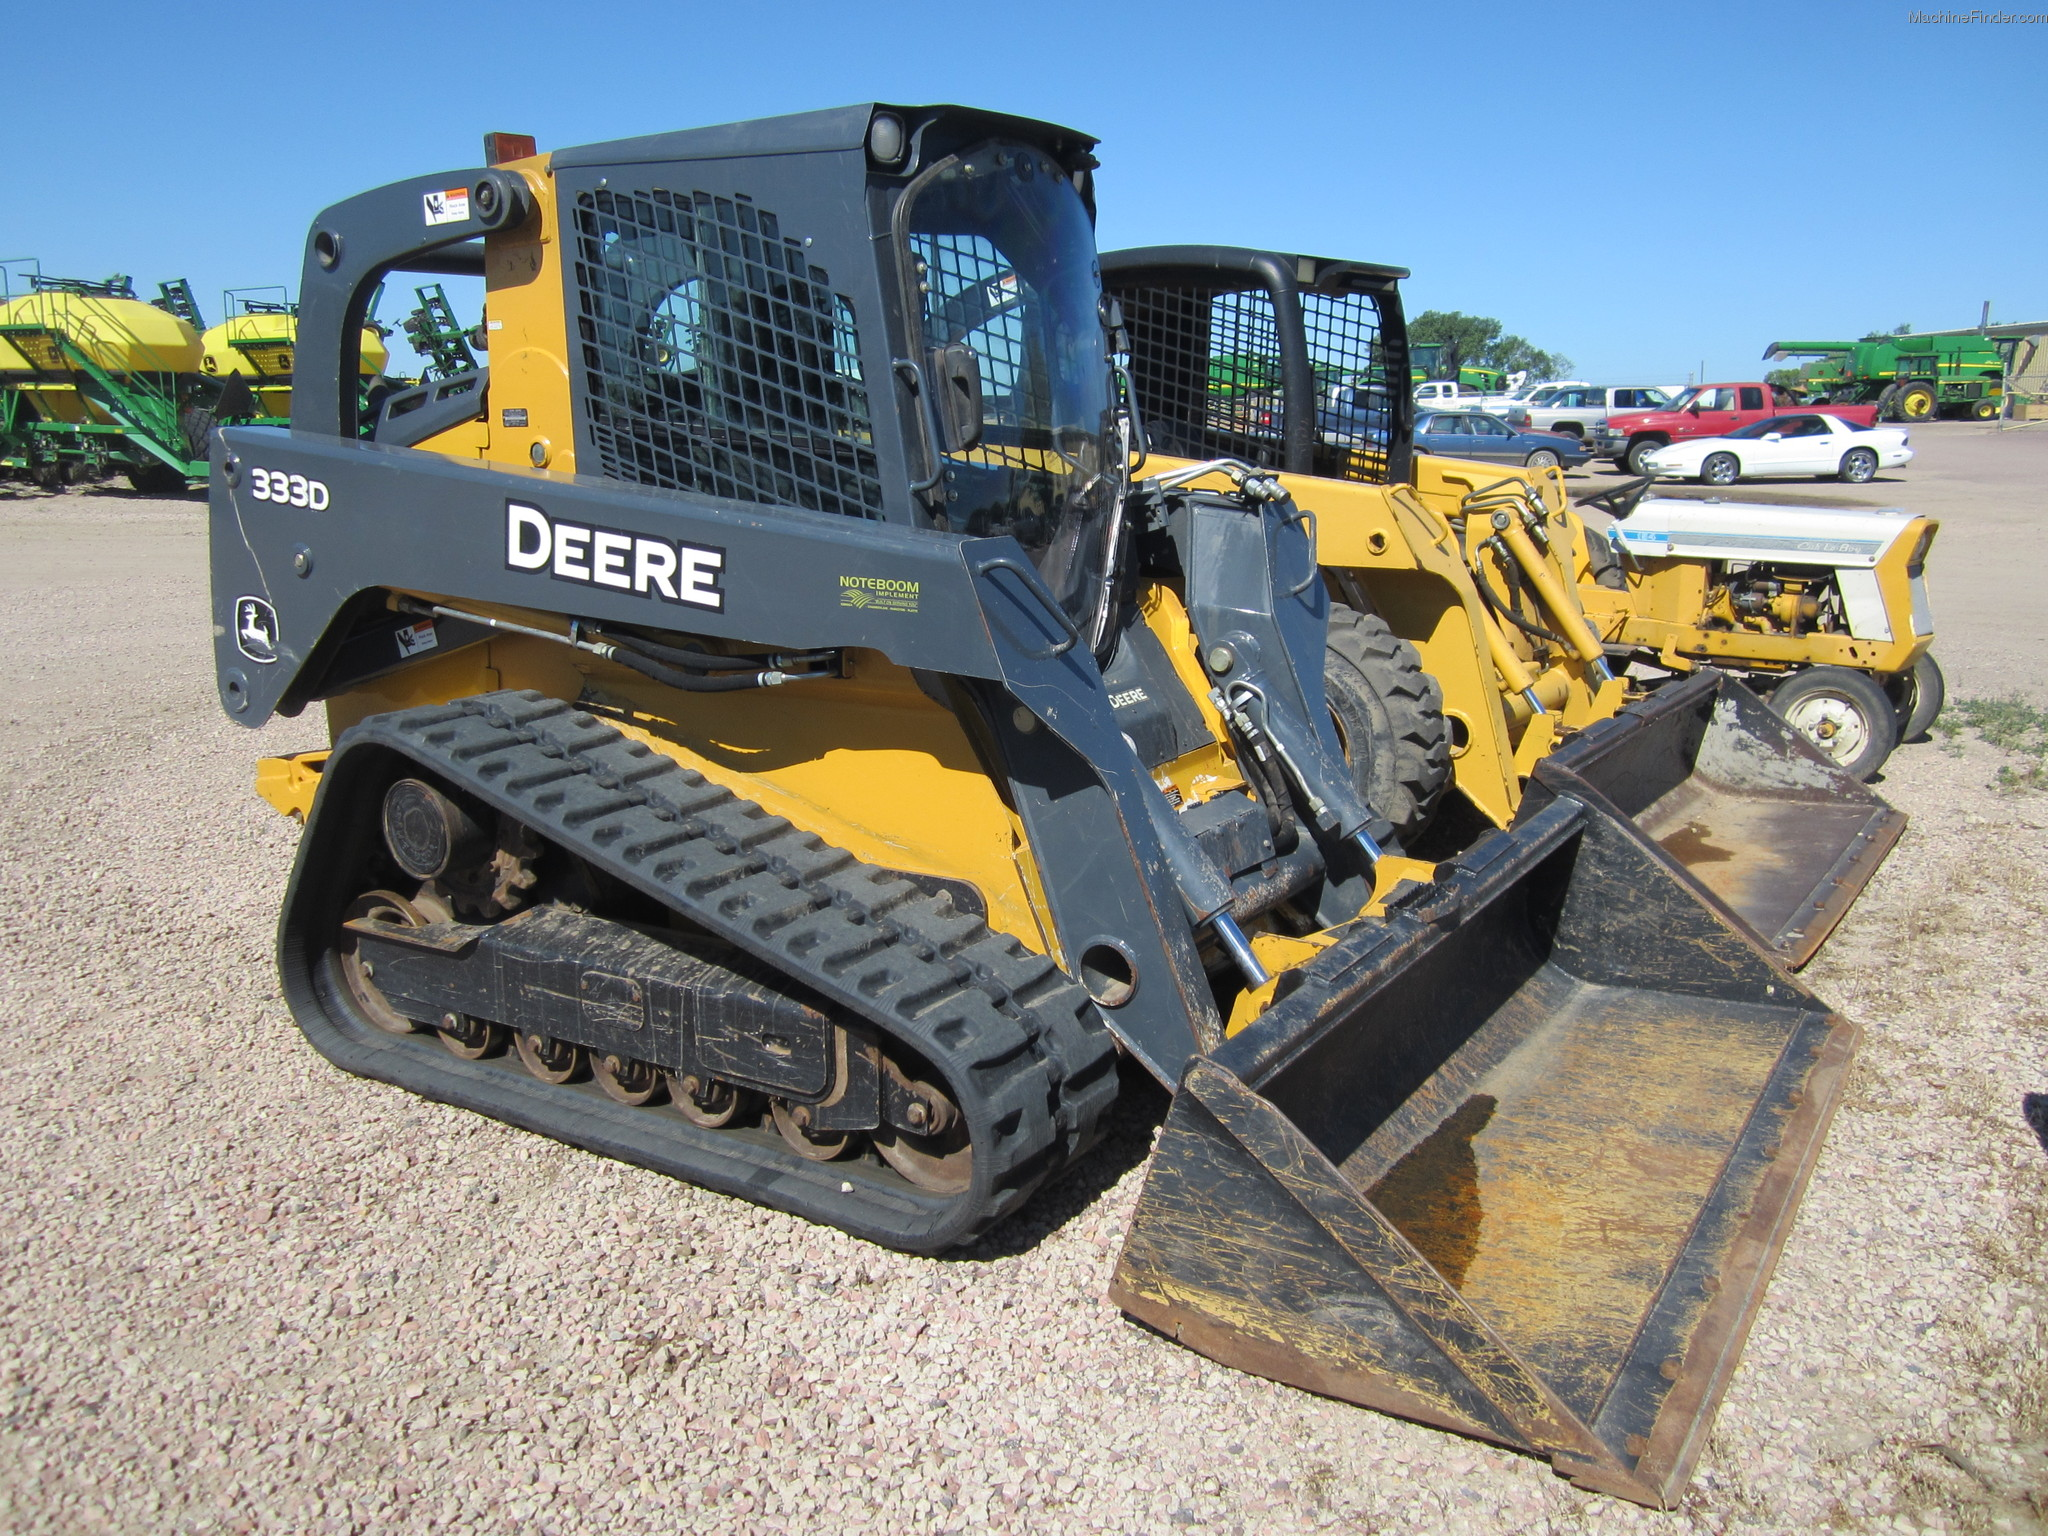 2011 John Deere CT333D Compact Track Loader - John Deere MachineFinder